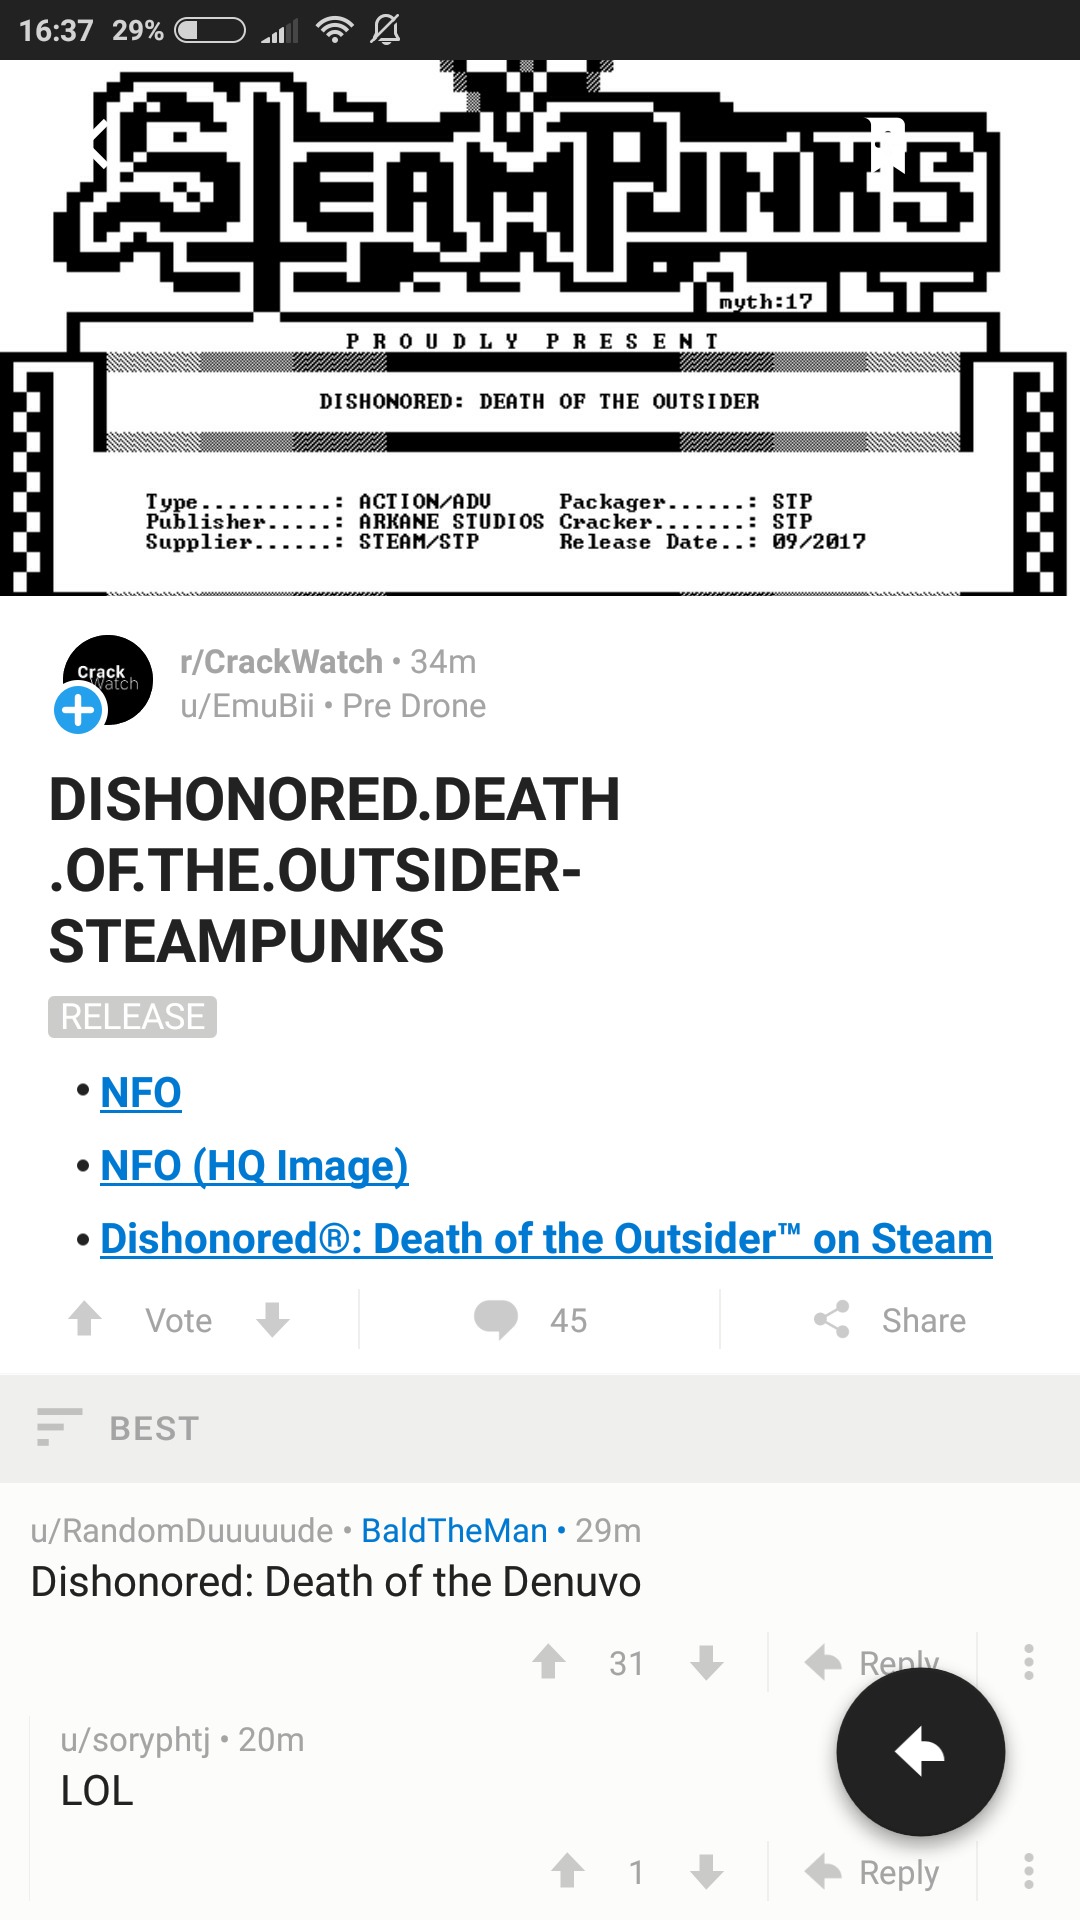 dishonored.death.of.the.outsider-steampunks